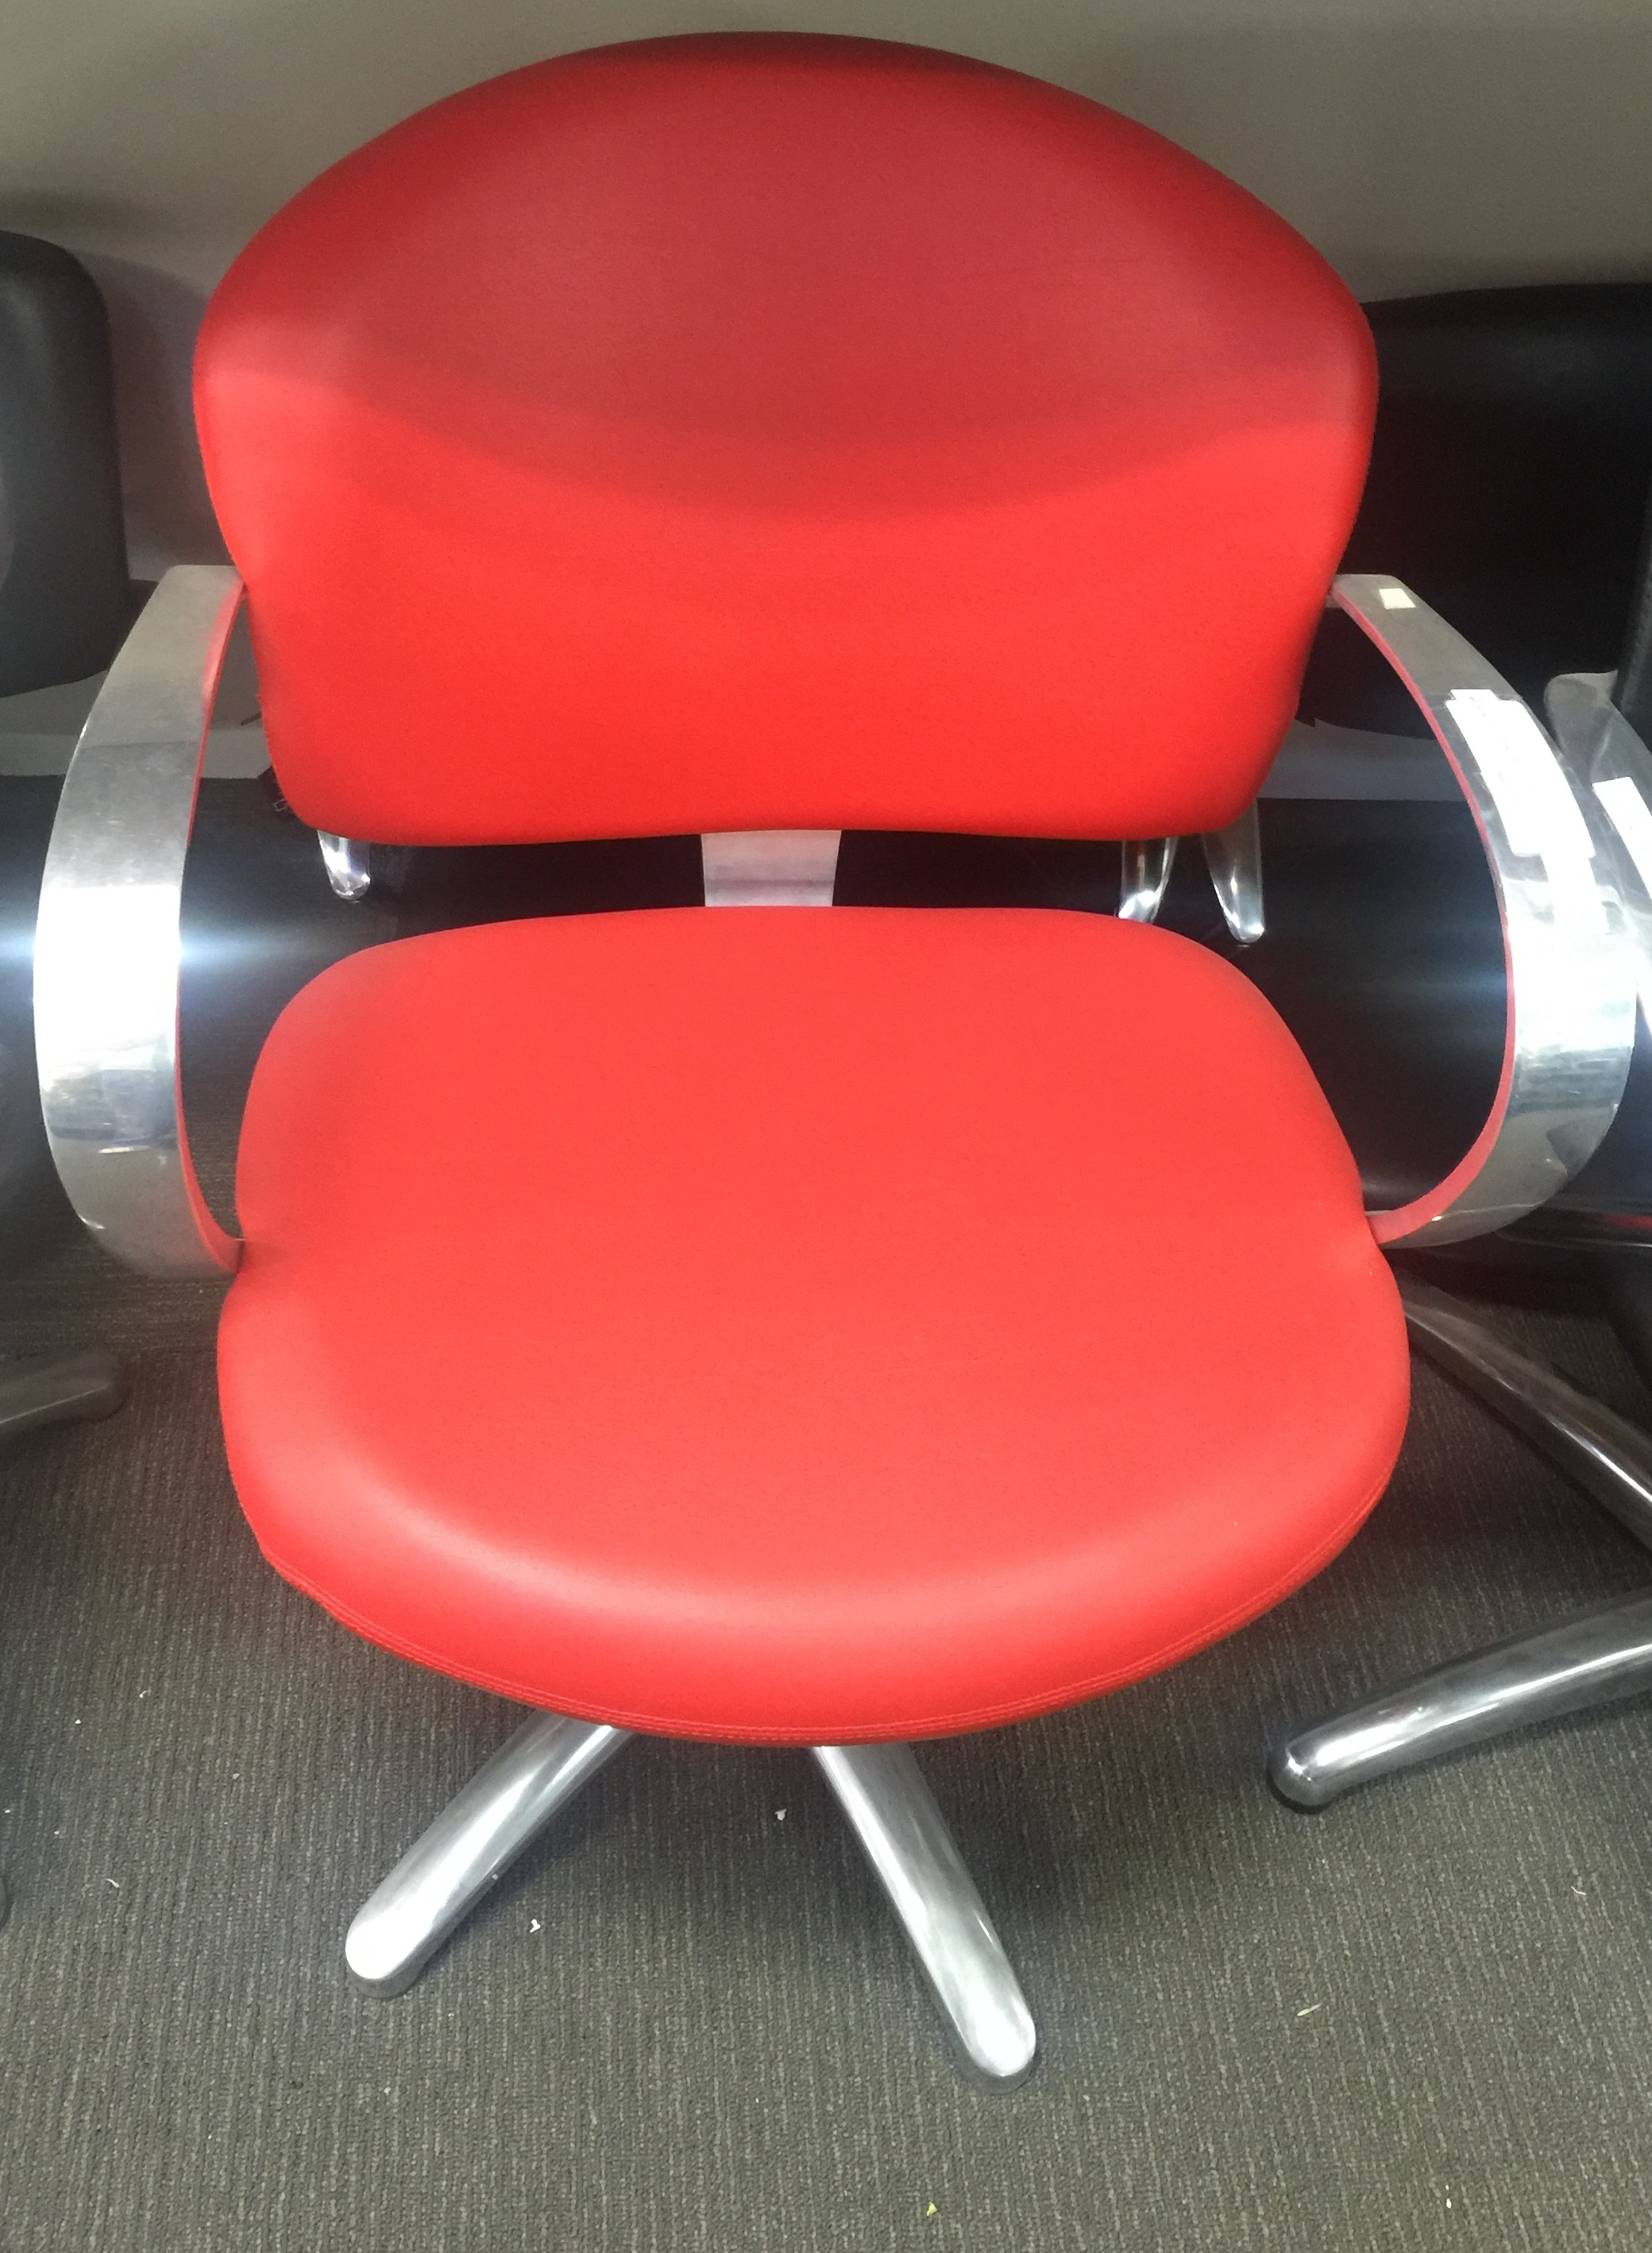 globe office chairs. Maletti EX Showroom Stock Globe RED Salon Chair Office Chairs